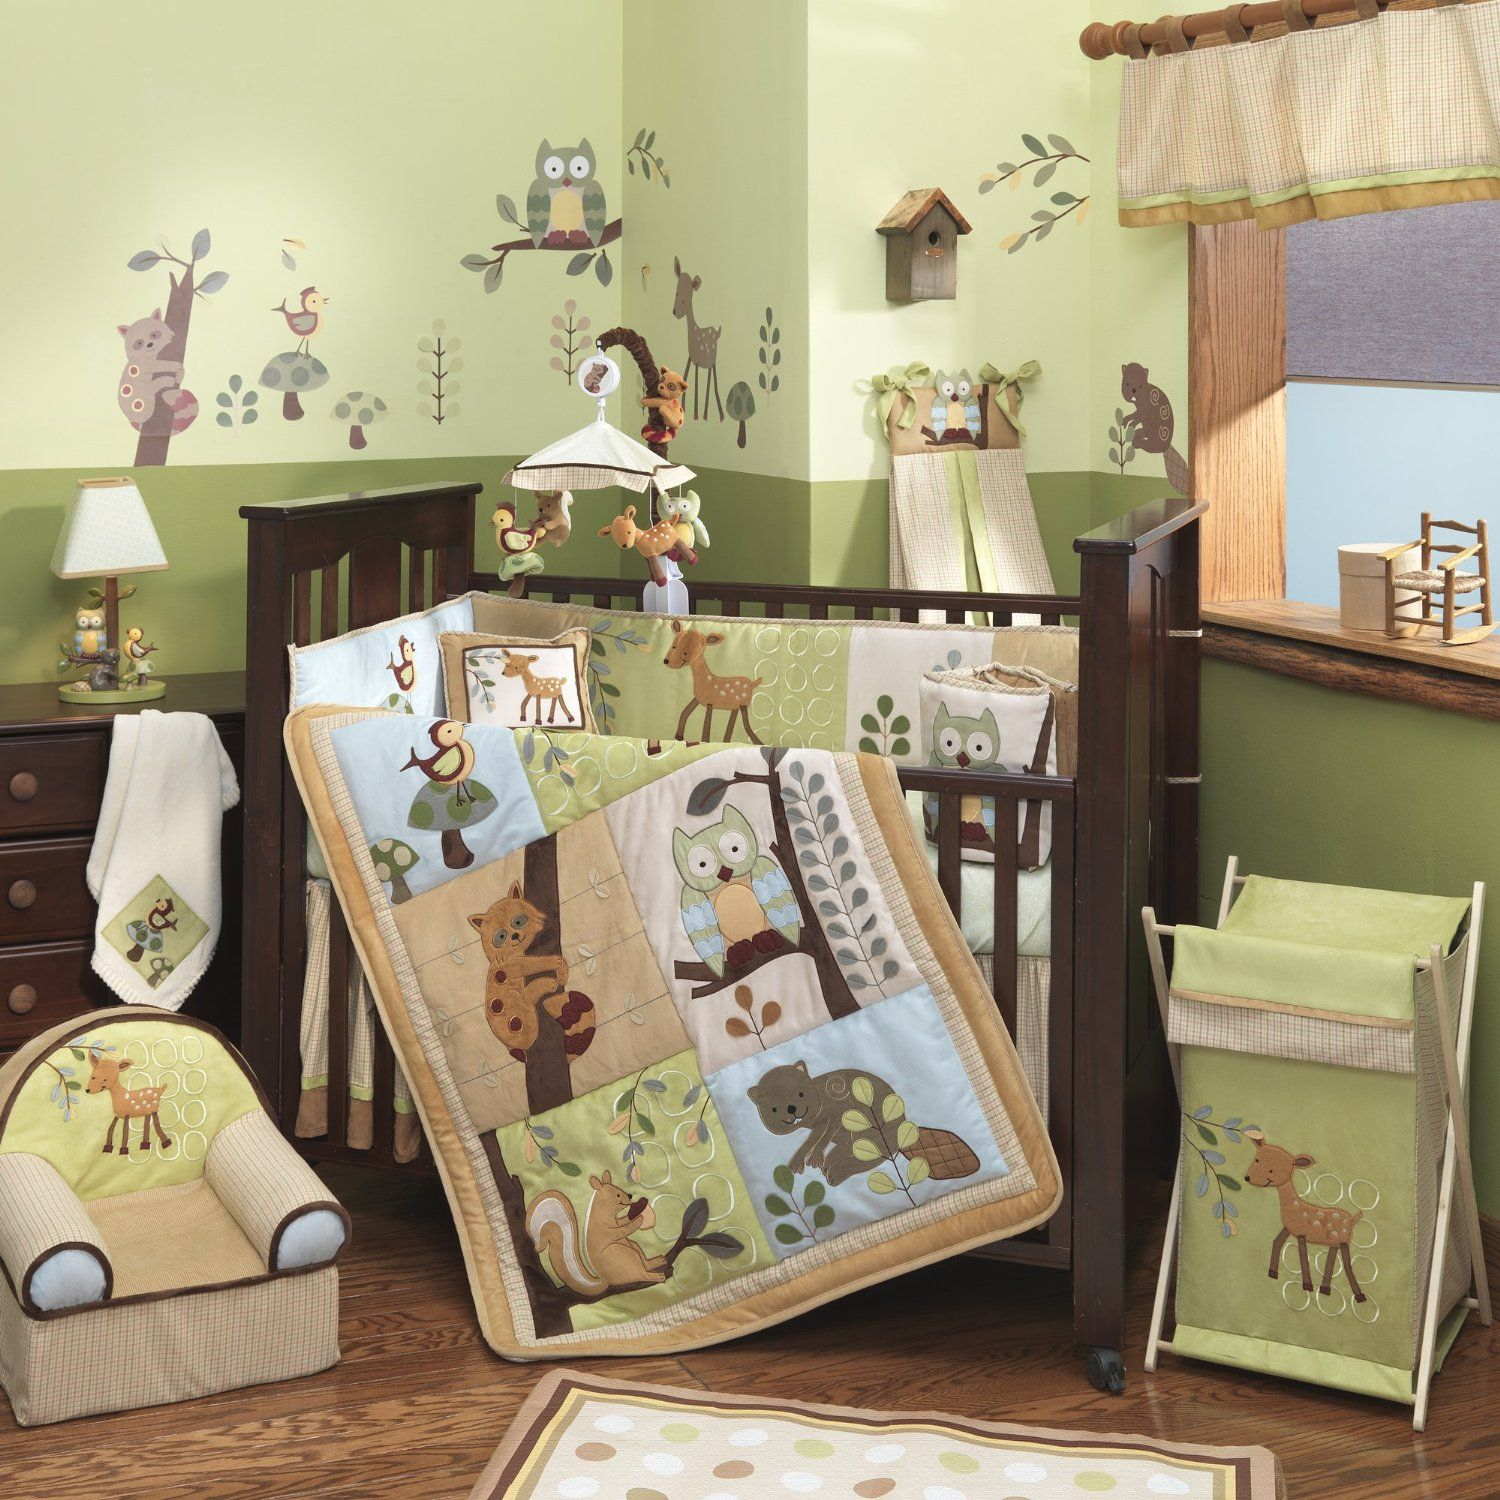 Baby cribs green - Amazon Com Lambs Ivy Enchanted Forest 6 Pc Baby Crib Bedding Set